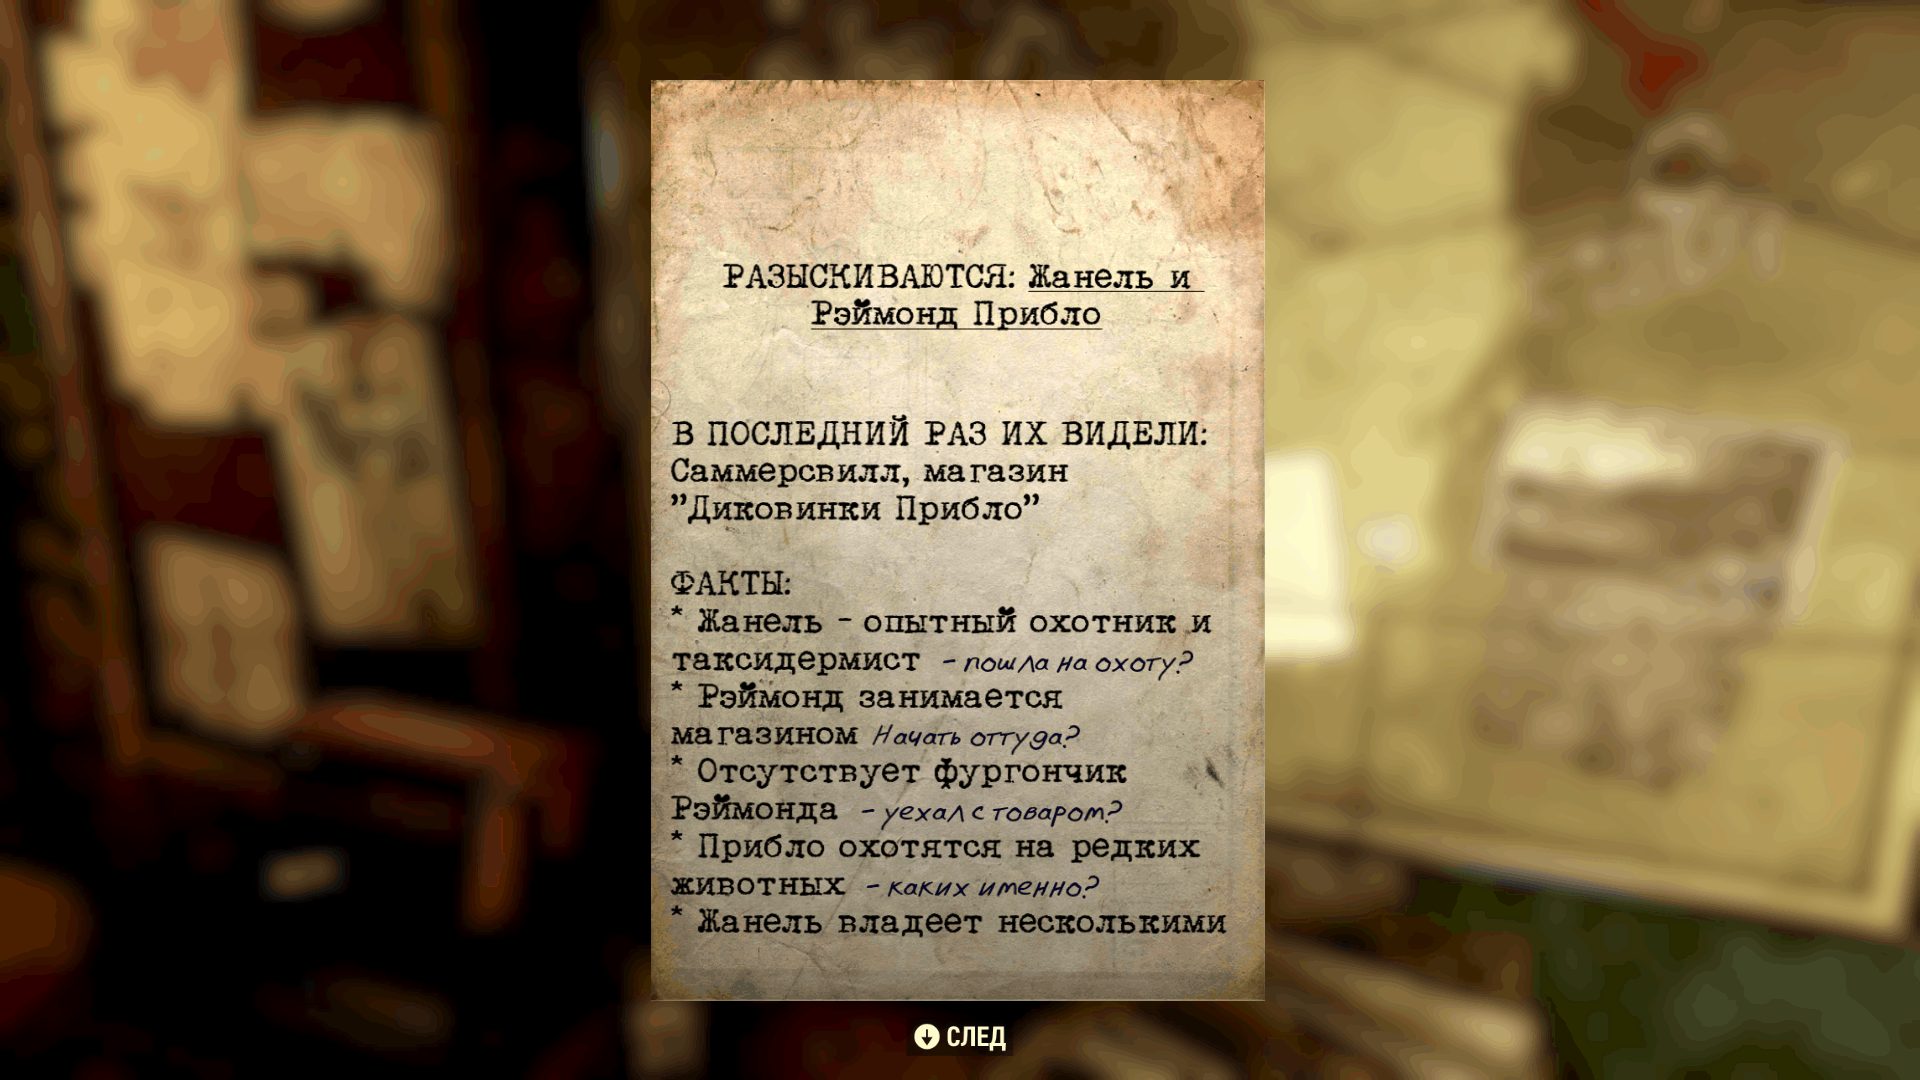 Cyrillized Font Library - Fallout 76 Mod download